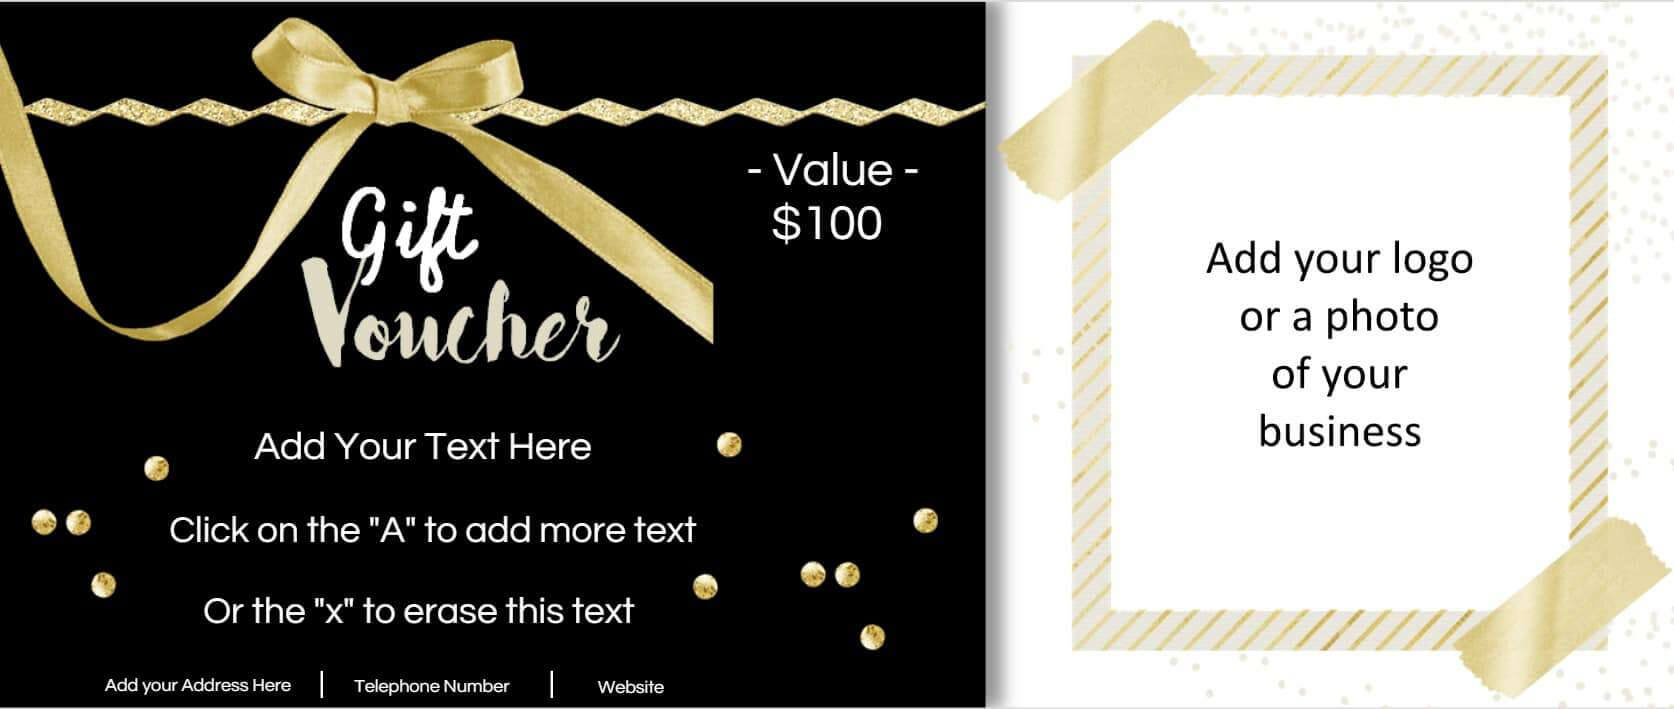 Free Custom Birthday Coupons - Customize Online & Print At Home Inside Custom Gift Certificate Template